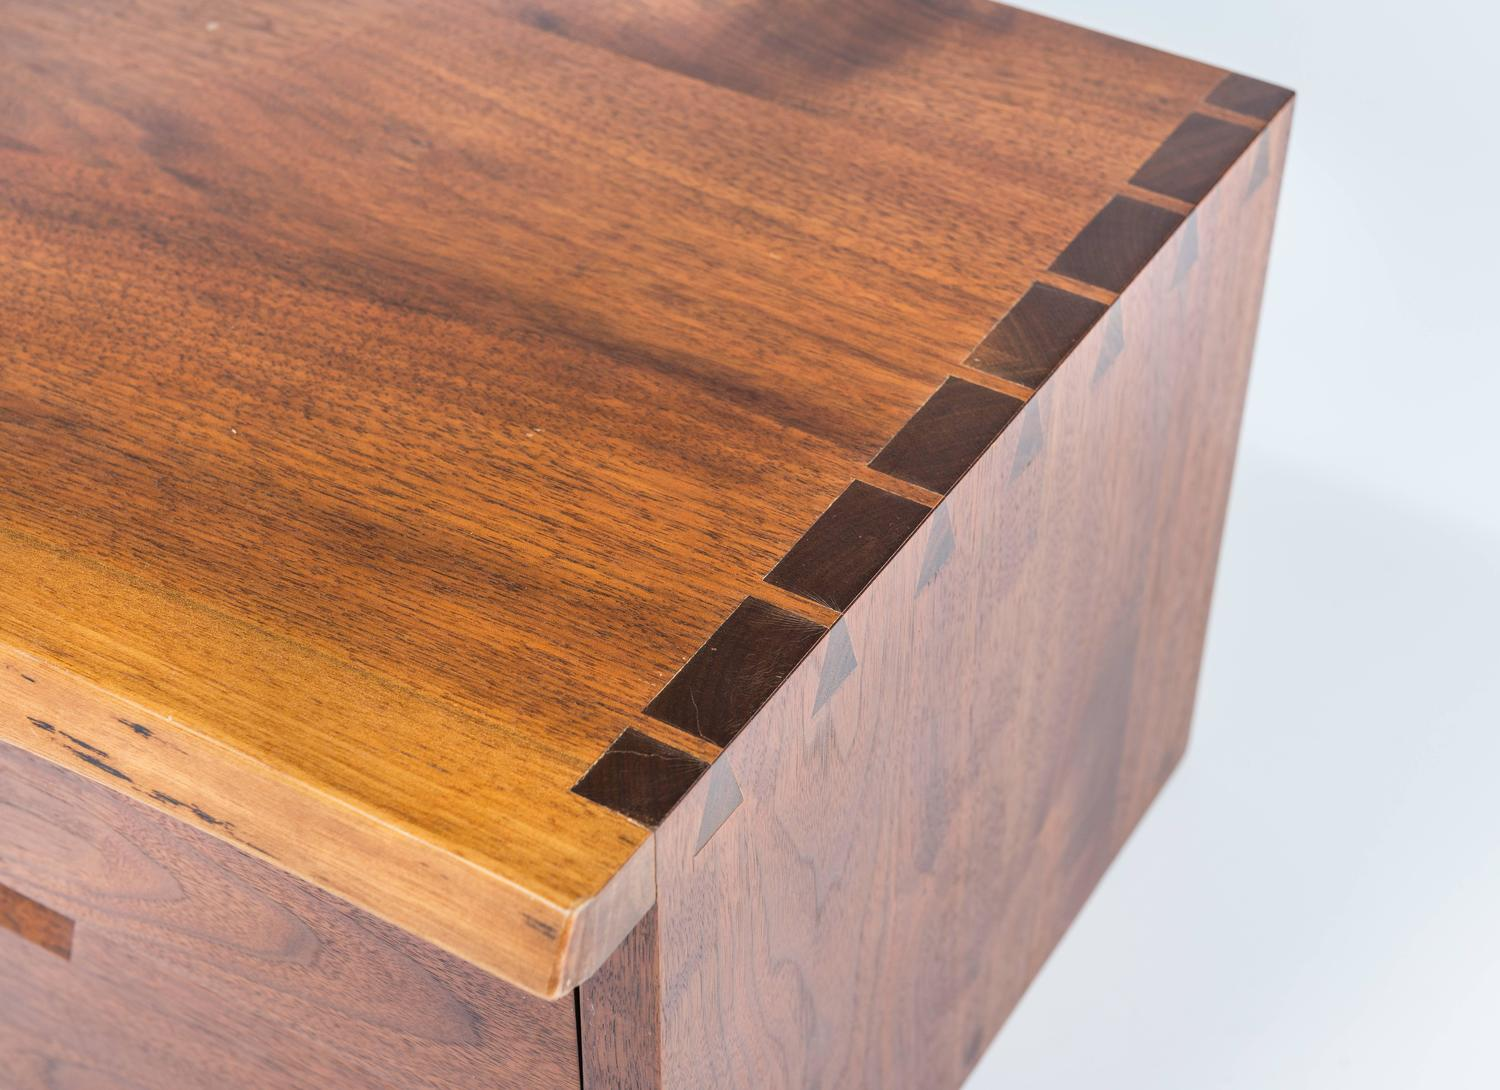 George Nakashima Wall-Mounted Nightstands For Sale at 1stdibs